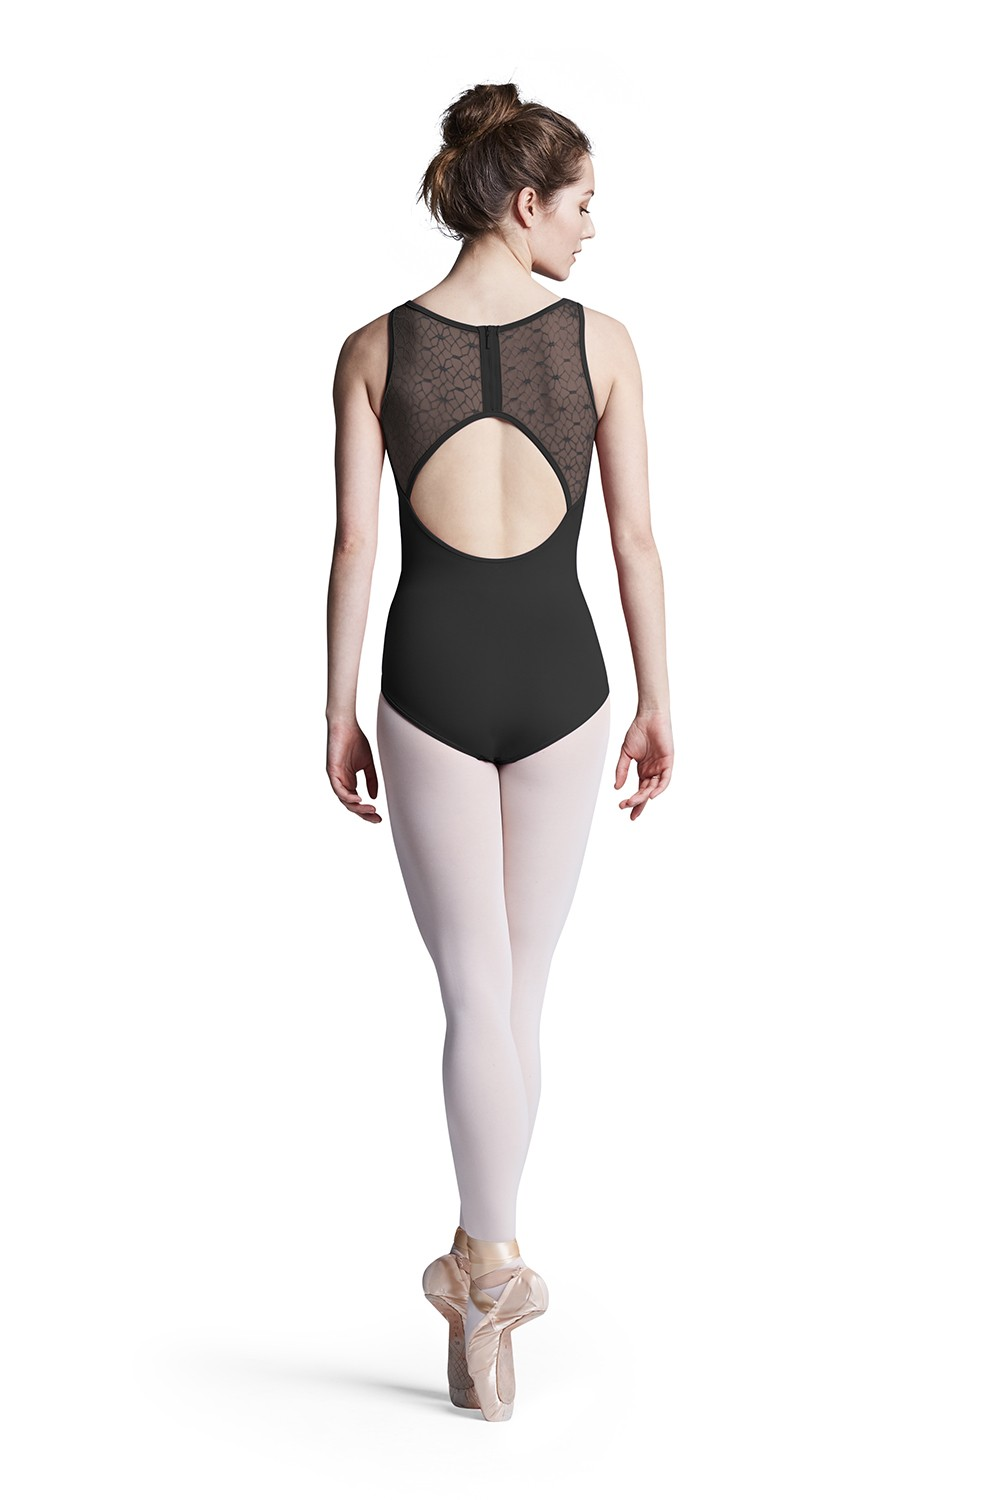 Therese Women's Dance Leotards